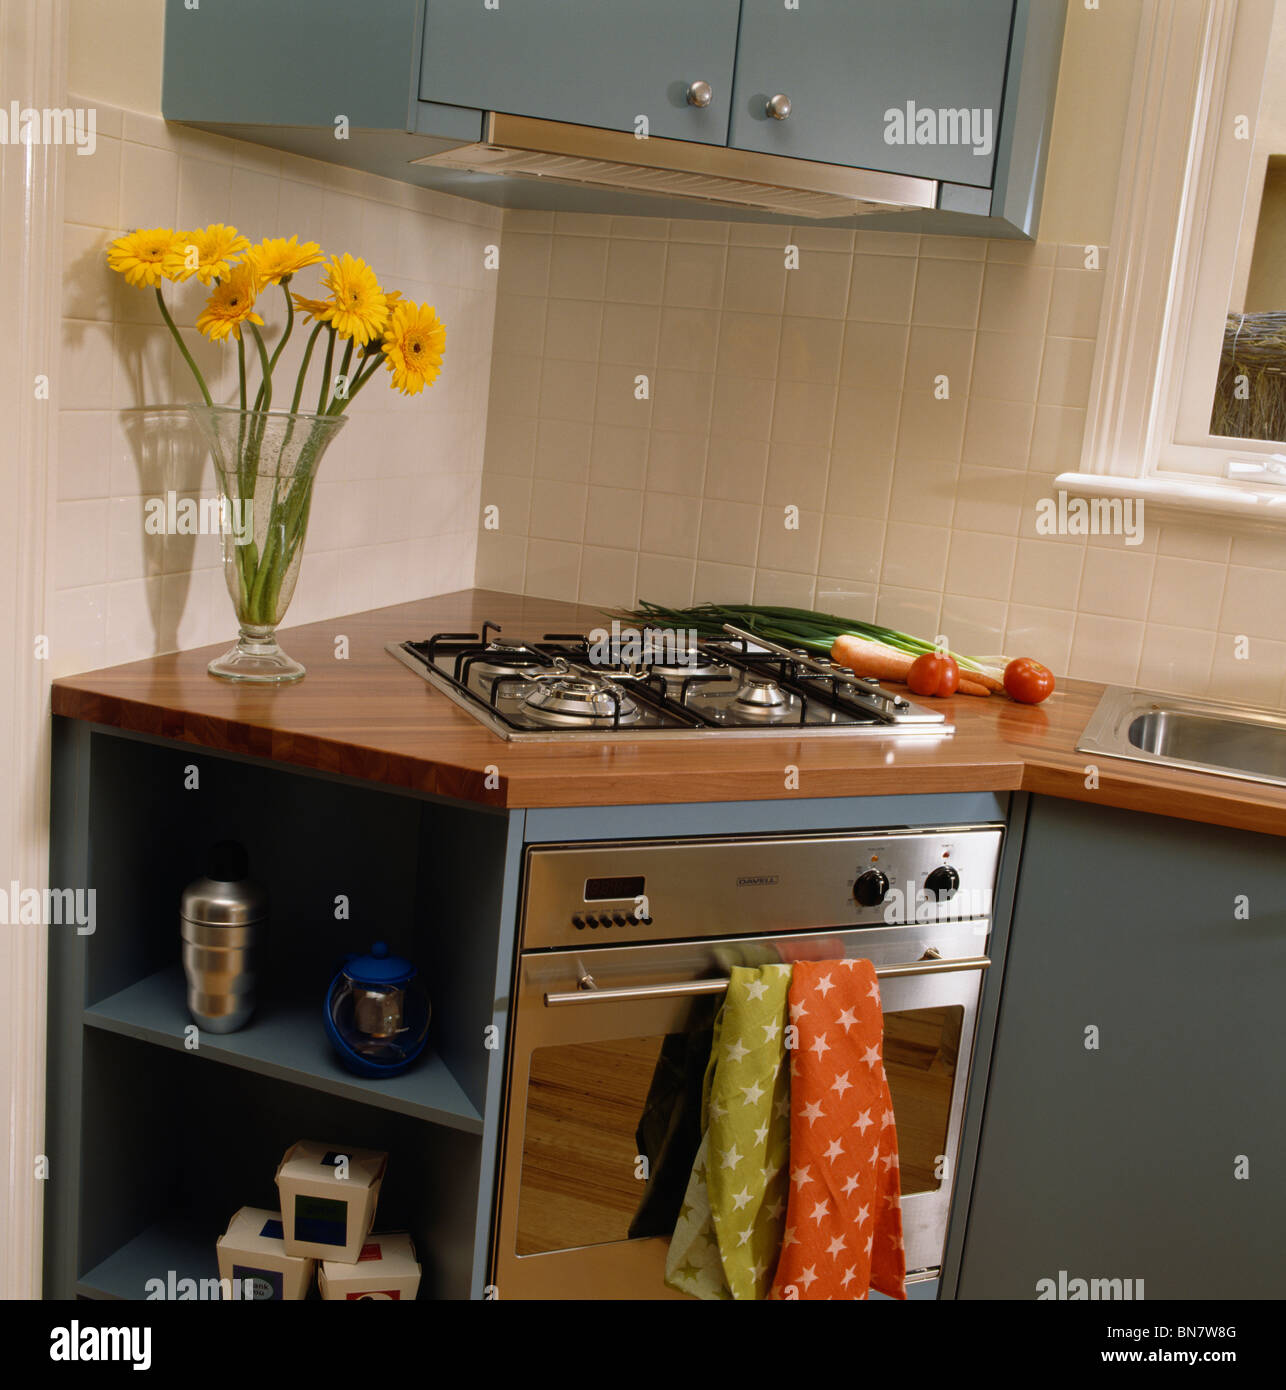 Sell Kitchen Cabinets Hob And Oven In Fitted Corner Unit In Modern Kitchen Stock